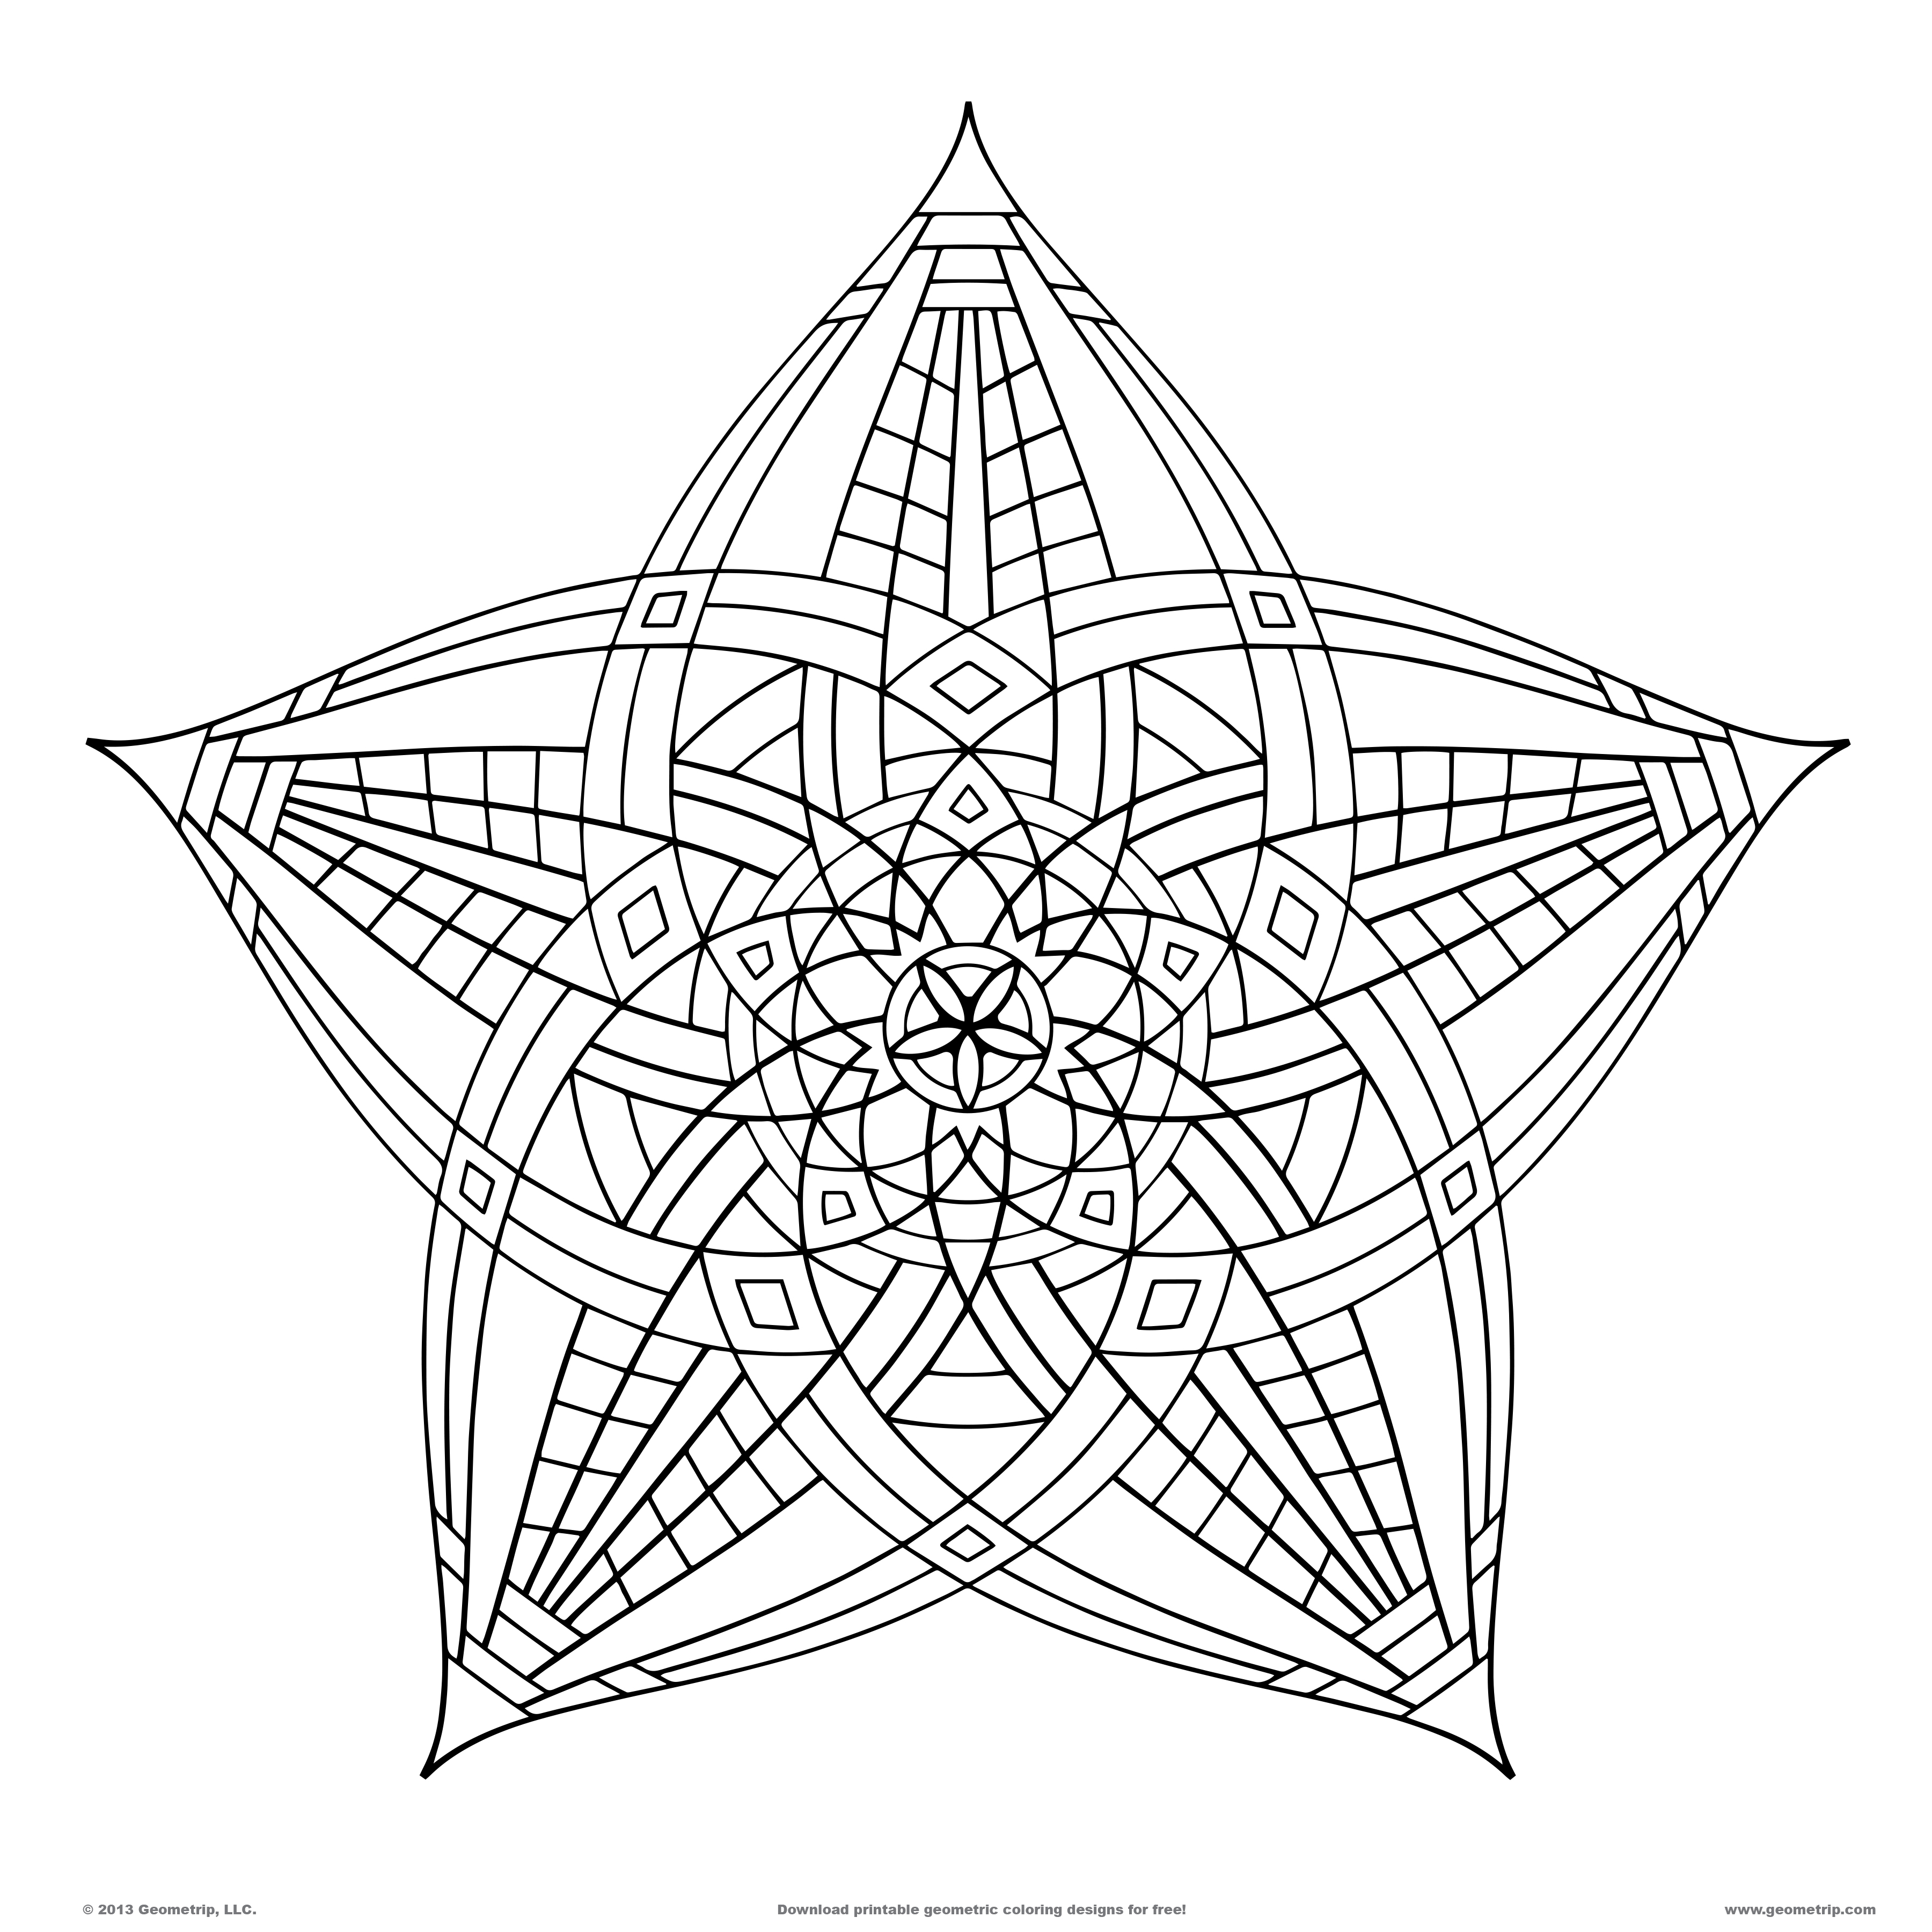 cool coloring designs to print 16 cool coloring pages of designs images cool geometric designs cool coloring to print